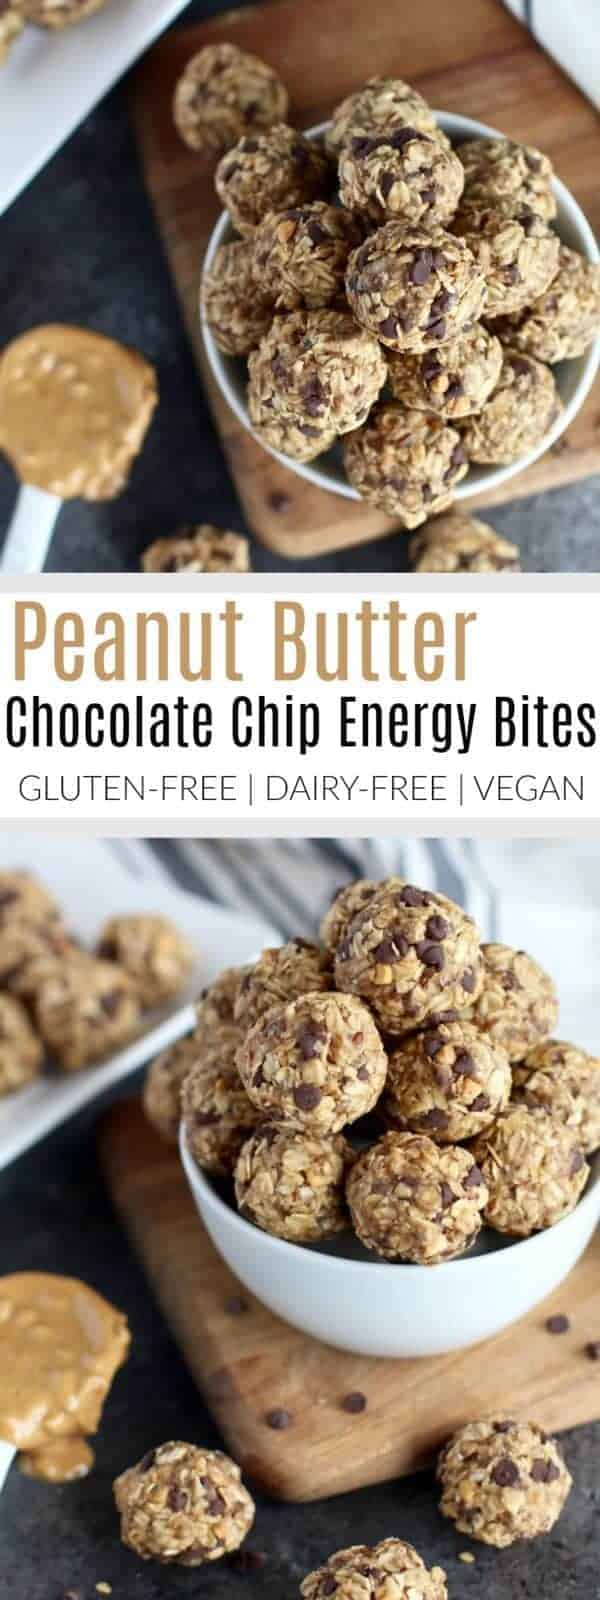 Peanut butter and chocolate come together with whole grain oats, flax and chia seeds in these Peanut butter Chocolate Chip Energy Bites. A healthy gluten-free, dairy-free, vegan-friendly snack or pre-workout fuel. | The Real Food Dietitians | https://therealfoodrds.com/peanut-butter-chocolate-chip-energy-bites/